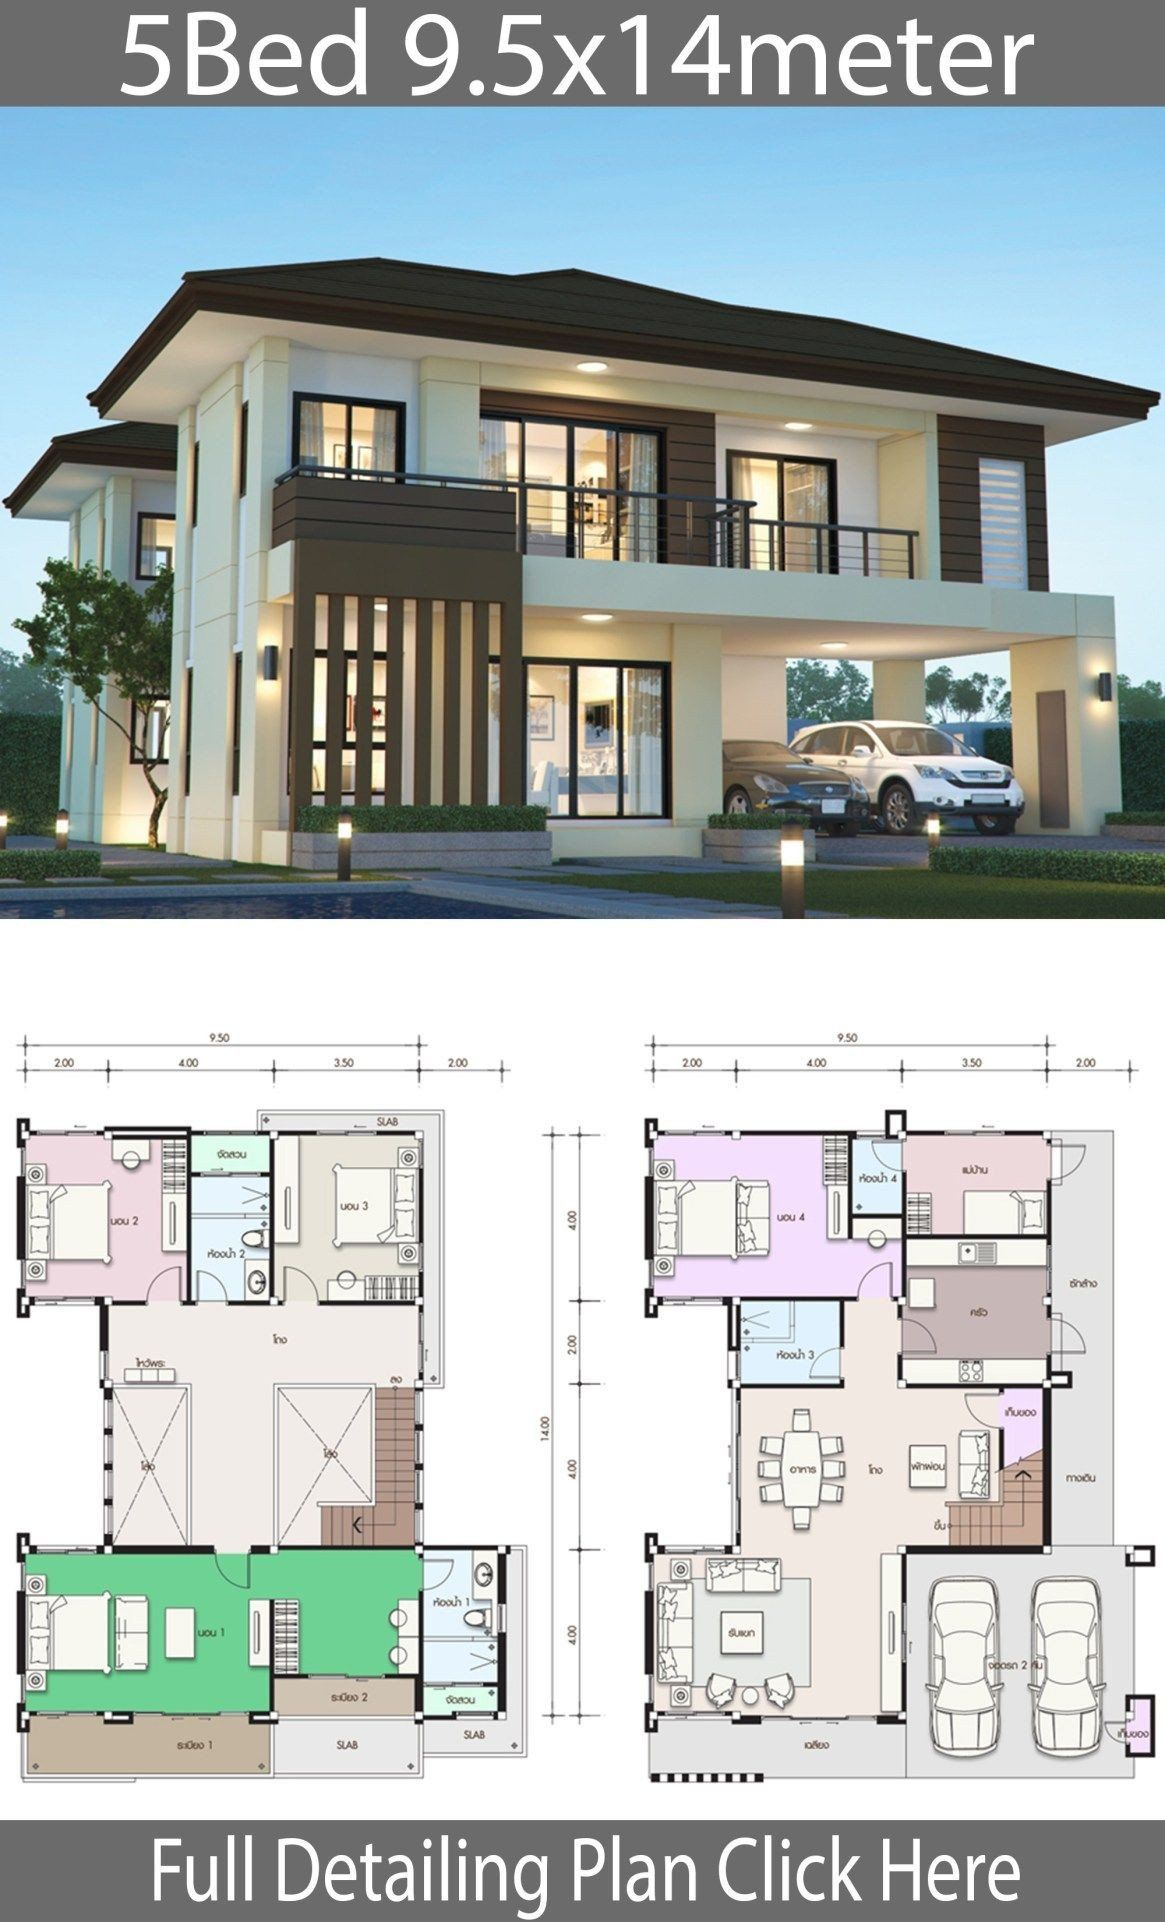 Modern House Design 2 Floor House Design Plan 9 5x14m With 5 Bedrooms 2 Storey House Design Affordable House Plans Model House Plan